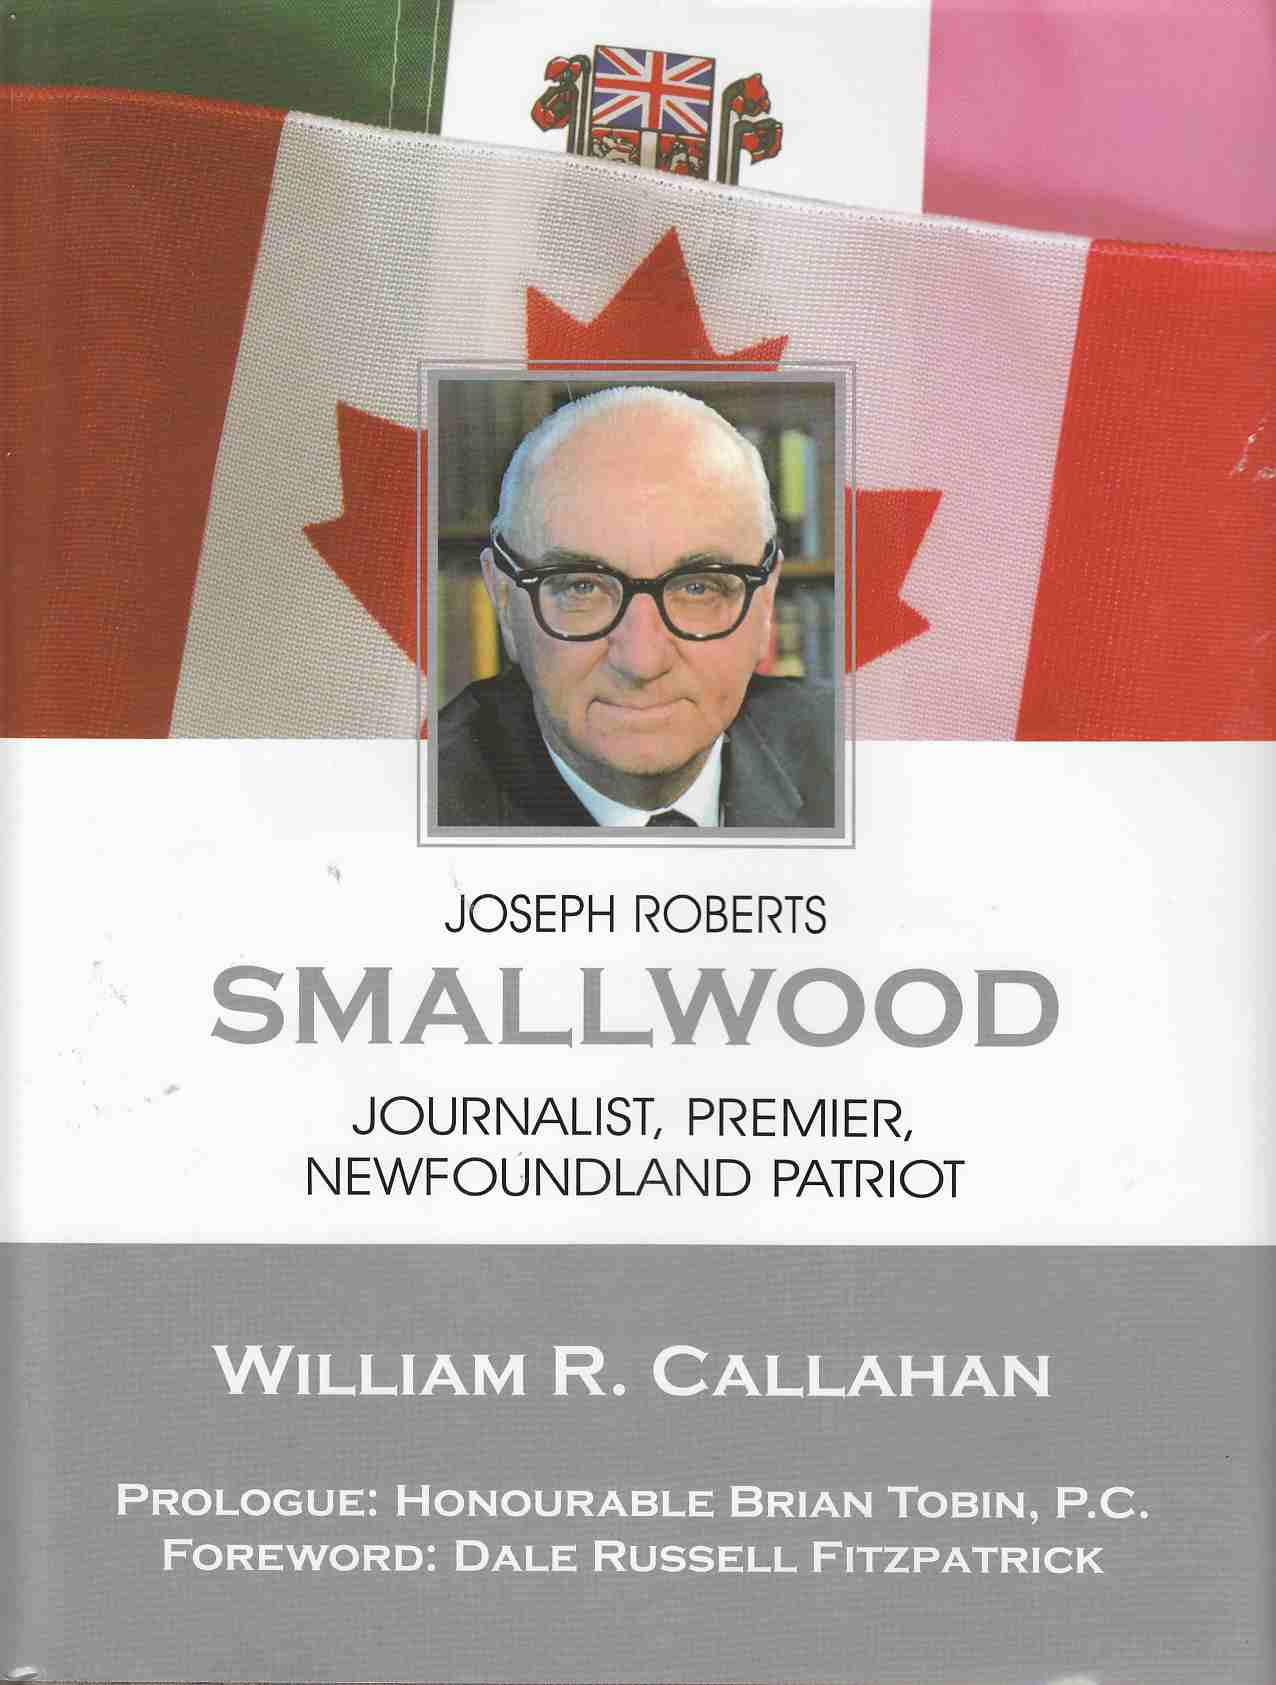 Image for Joseph Roberts Smallwood Journalist, Premier, Newfoundland Patriot